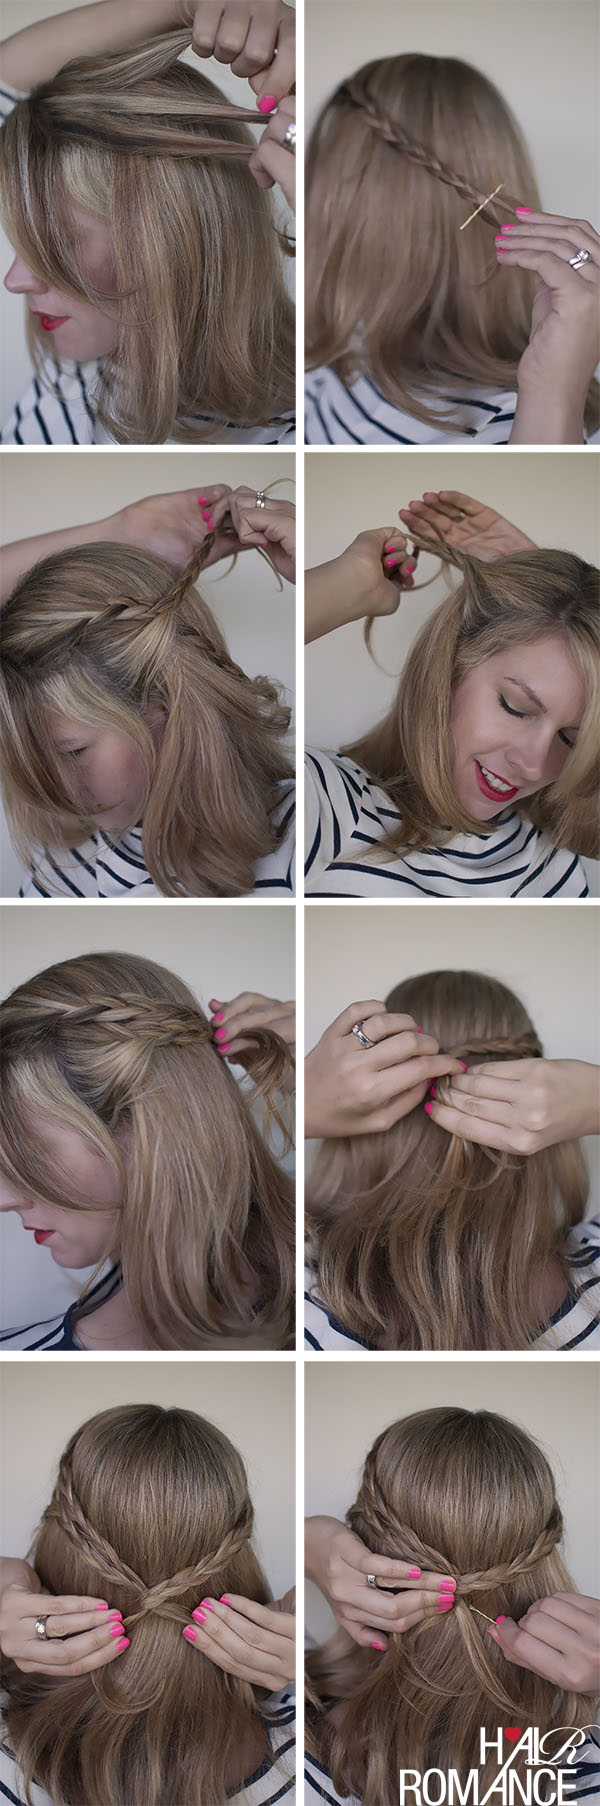 Triple tied braid hairstyle how to